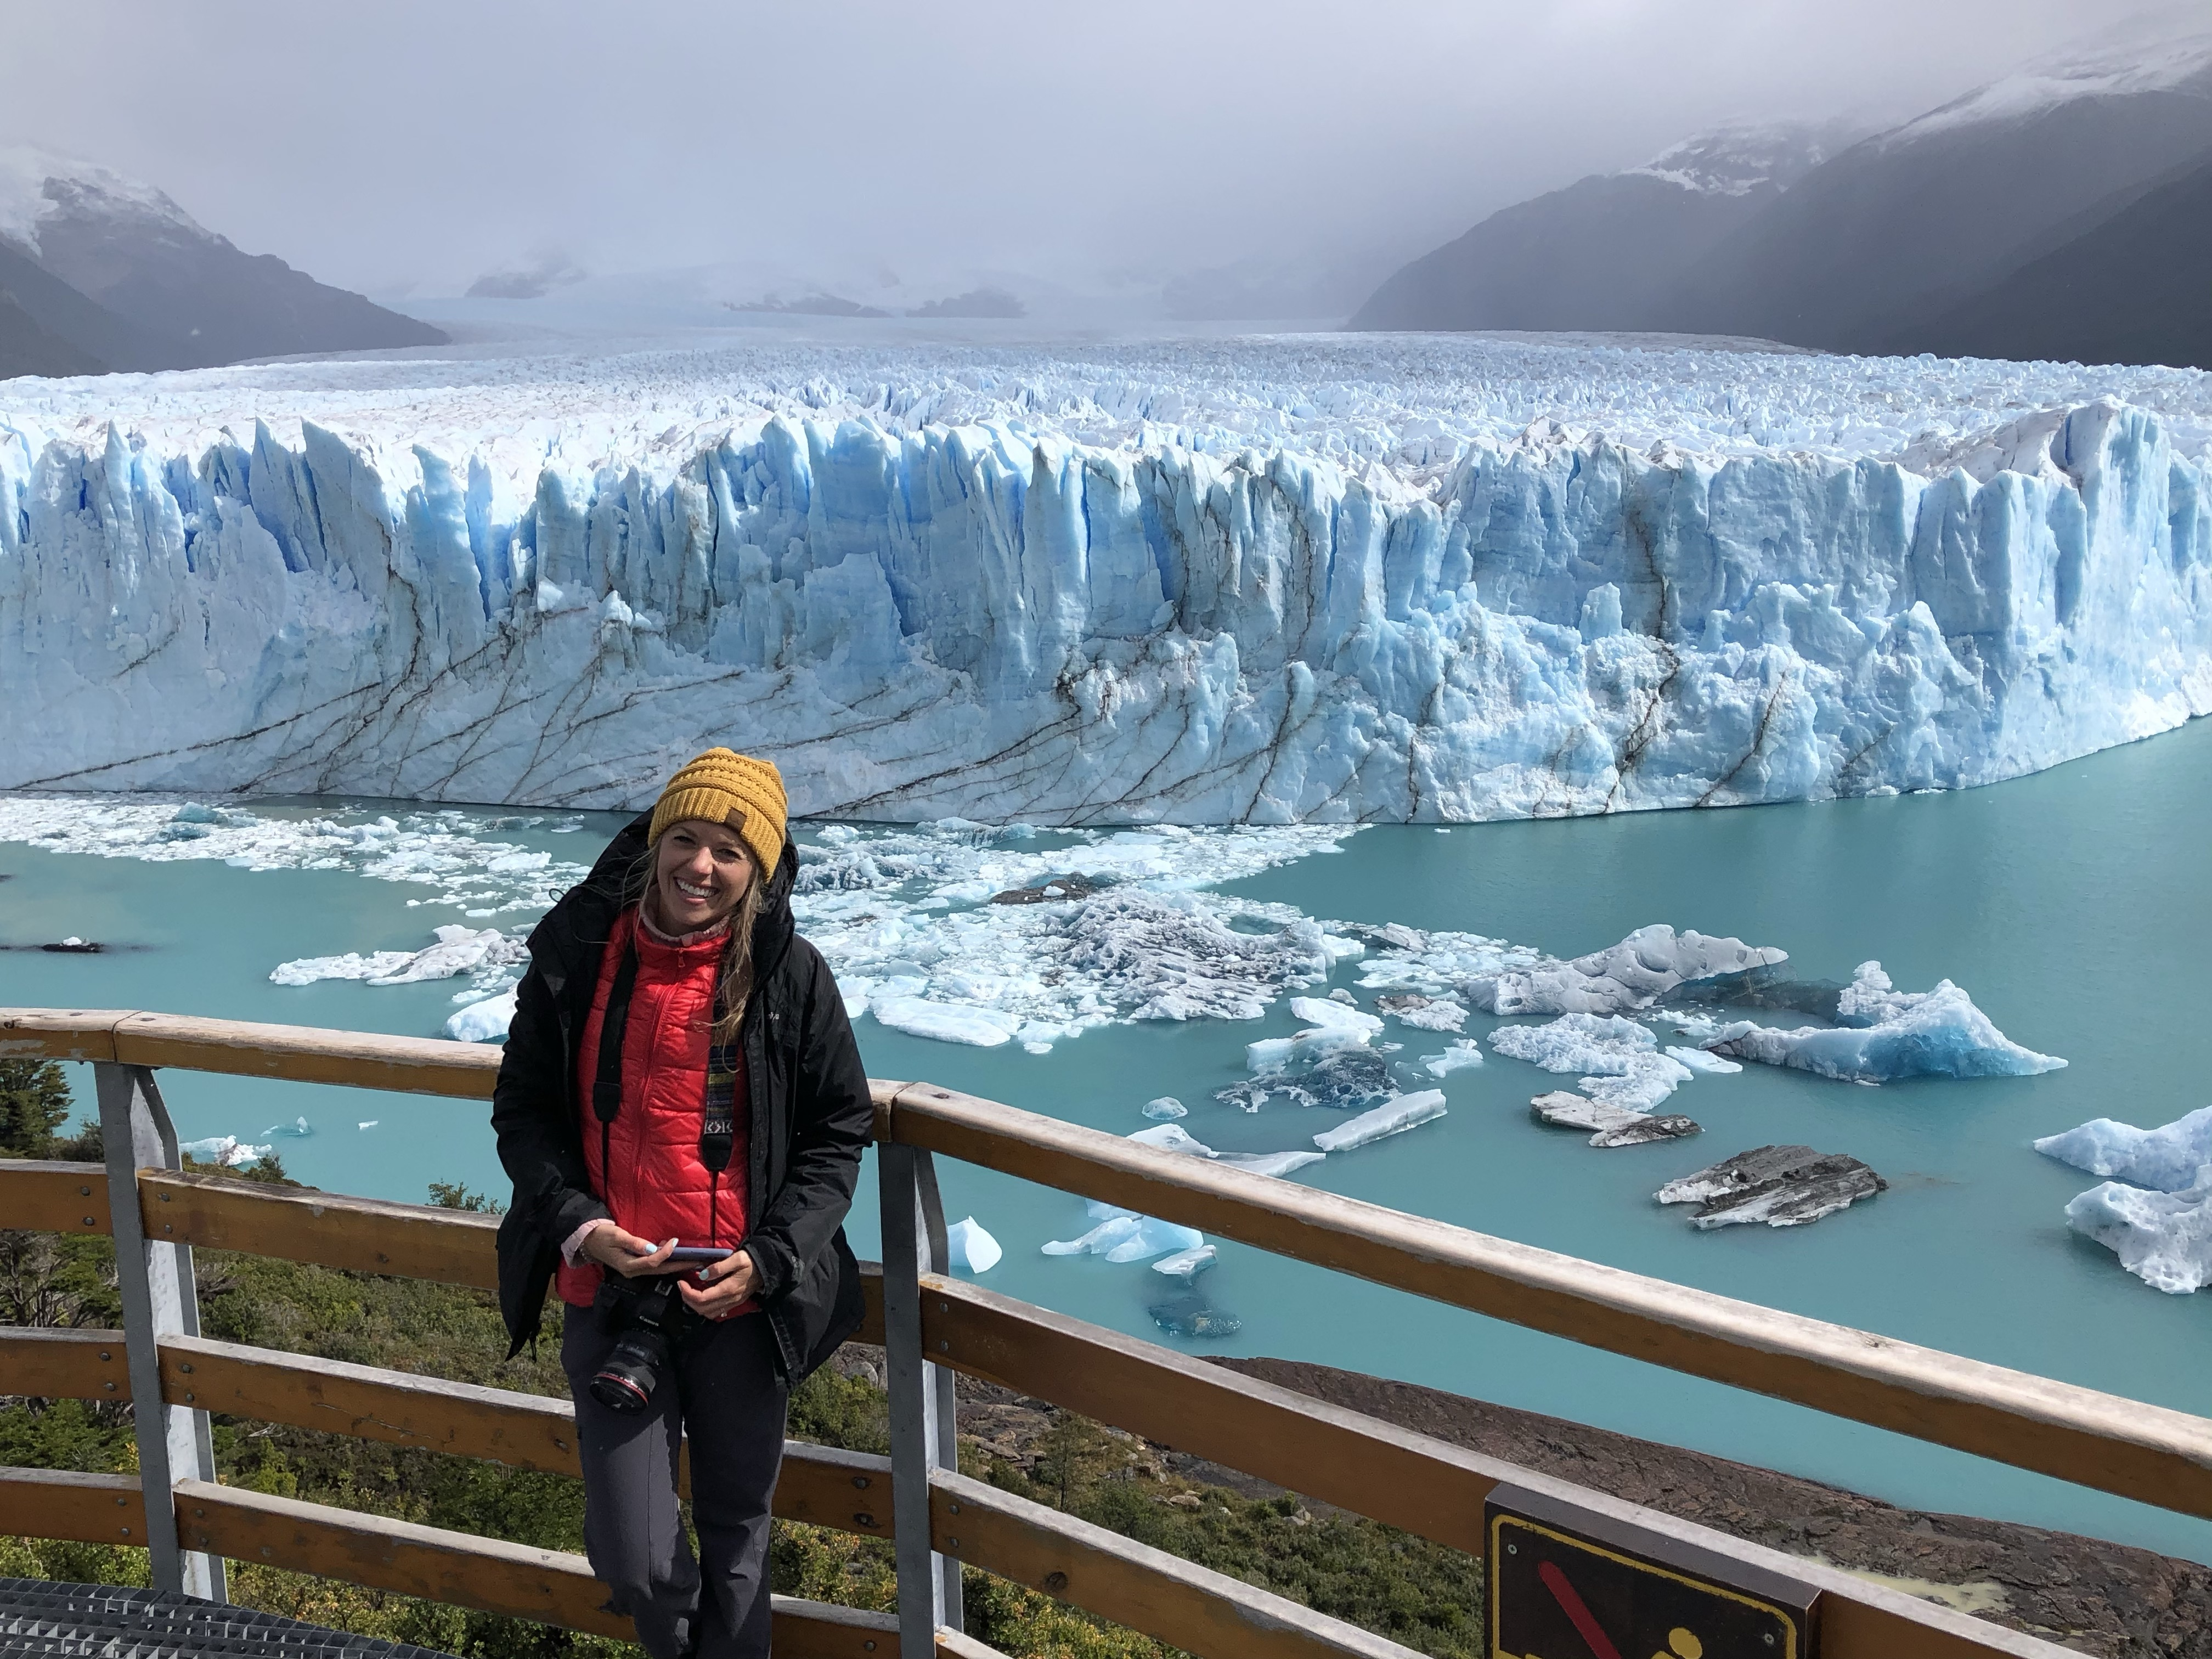 Girl standing on boardwalk with views of the Perito Moreno Glacier in the background